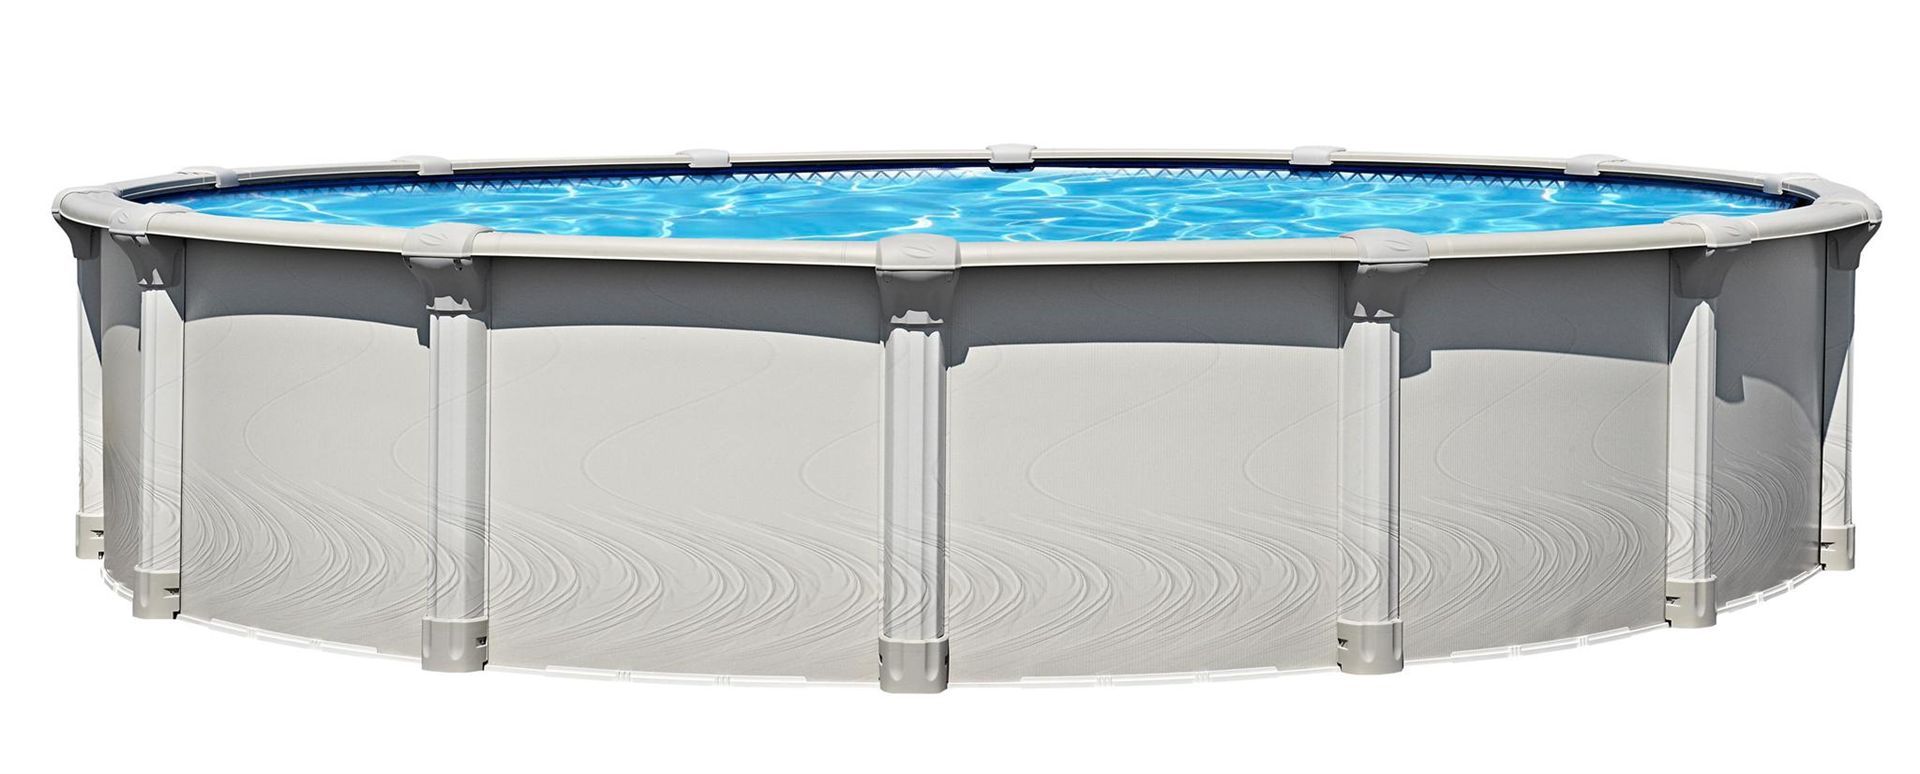 Morada by Sharkline Pools at Zagers